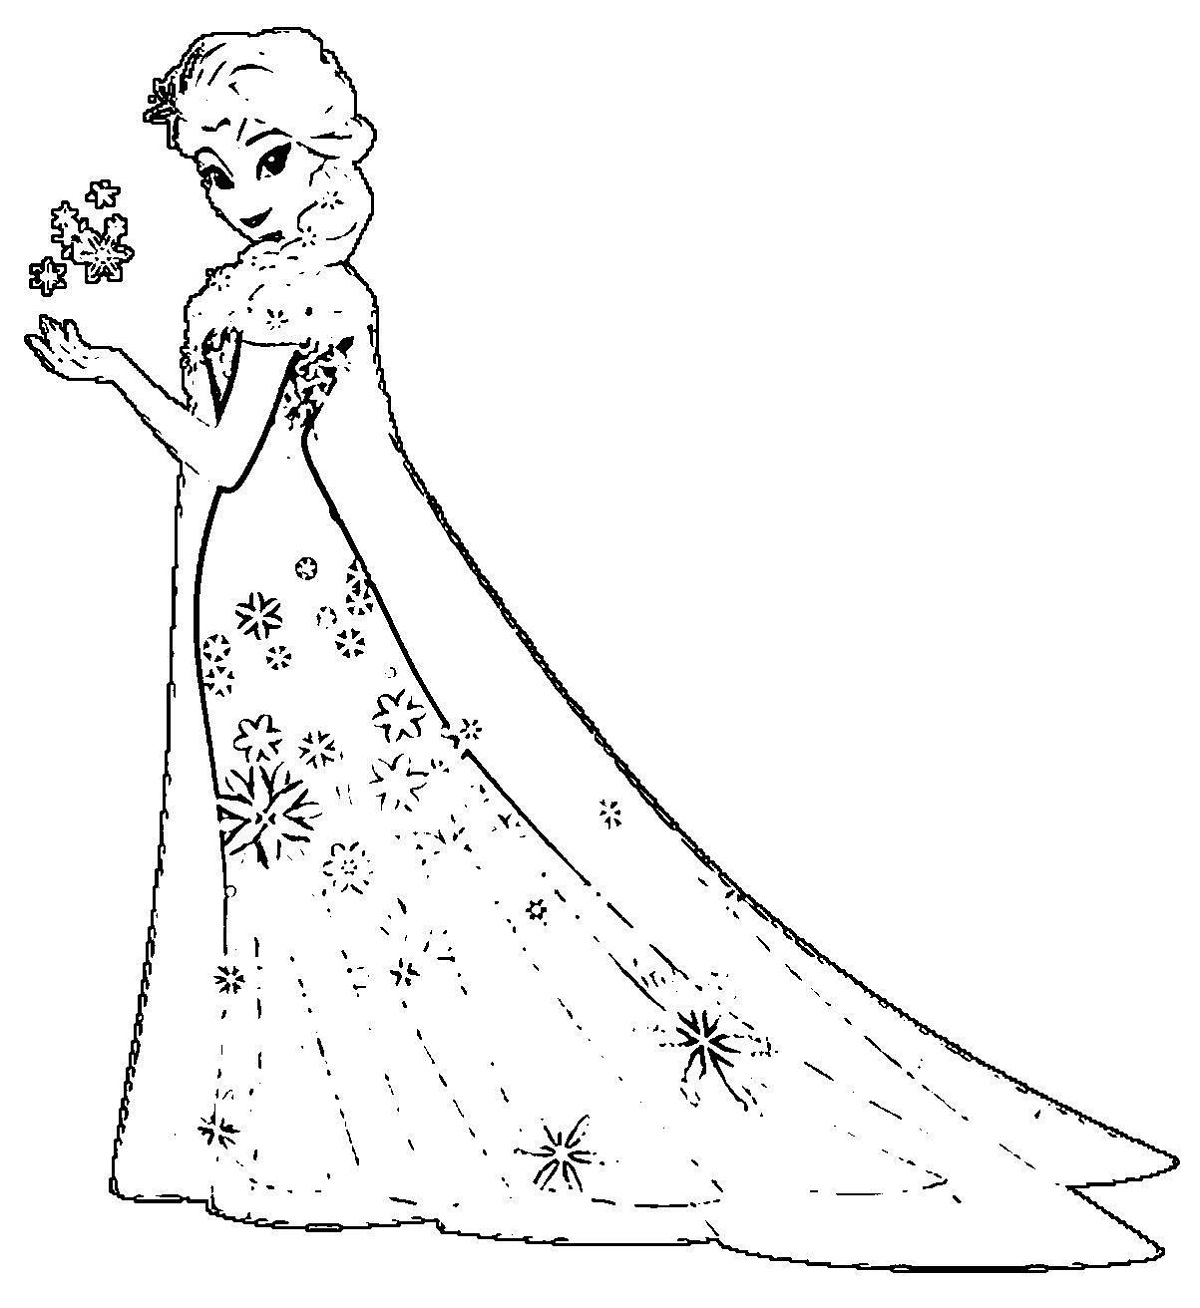 elsa frozen coloring sheets coloring pages with elsa in white dress frozen 2 sheets frozen elsa coloring